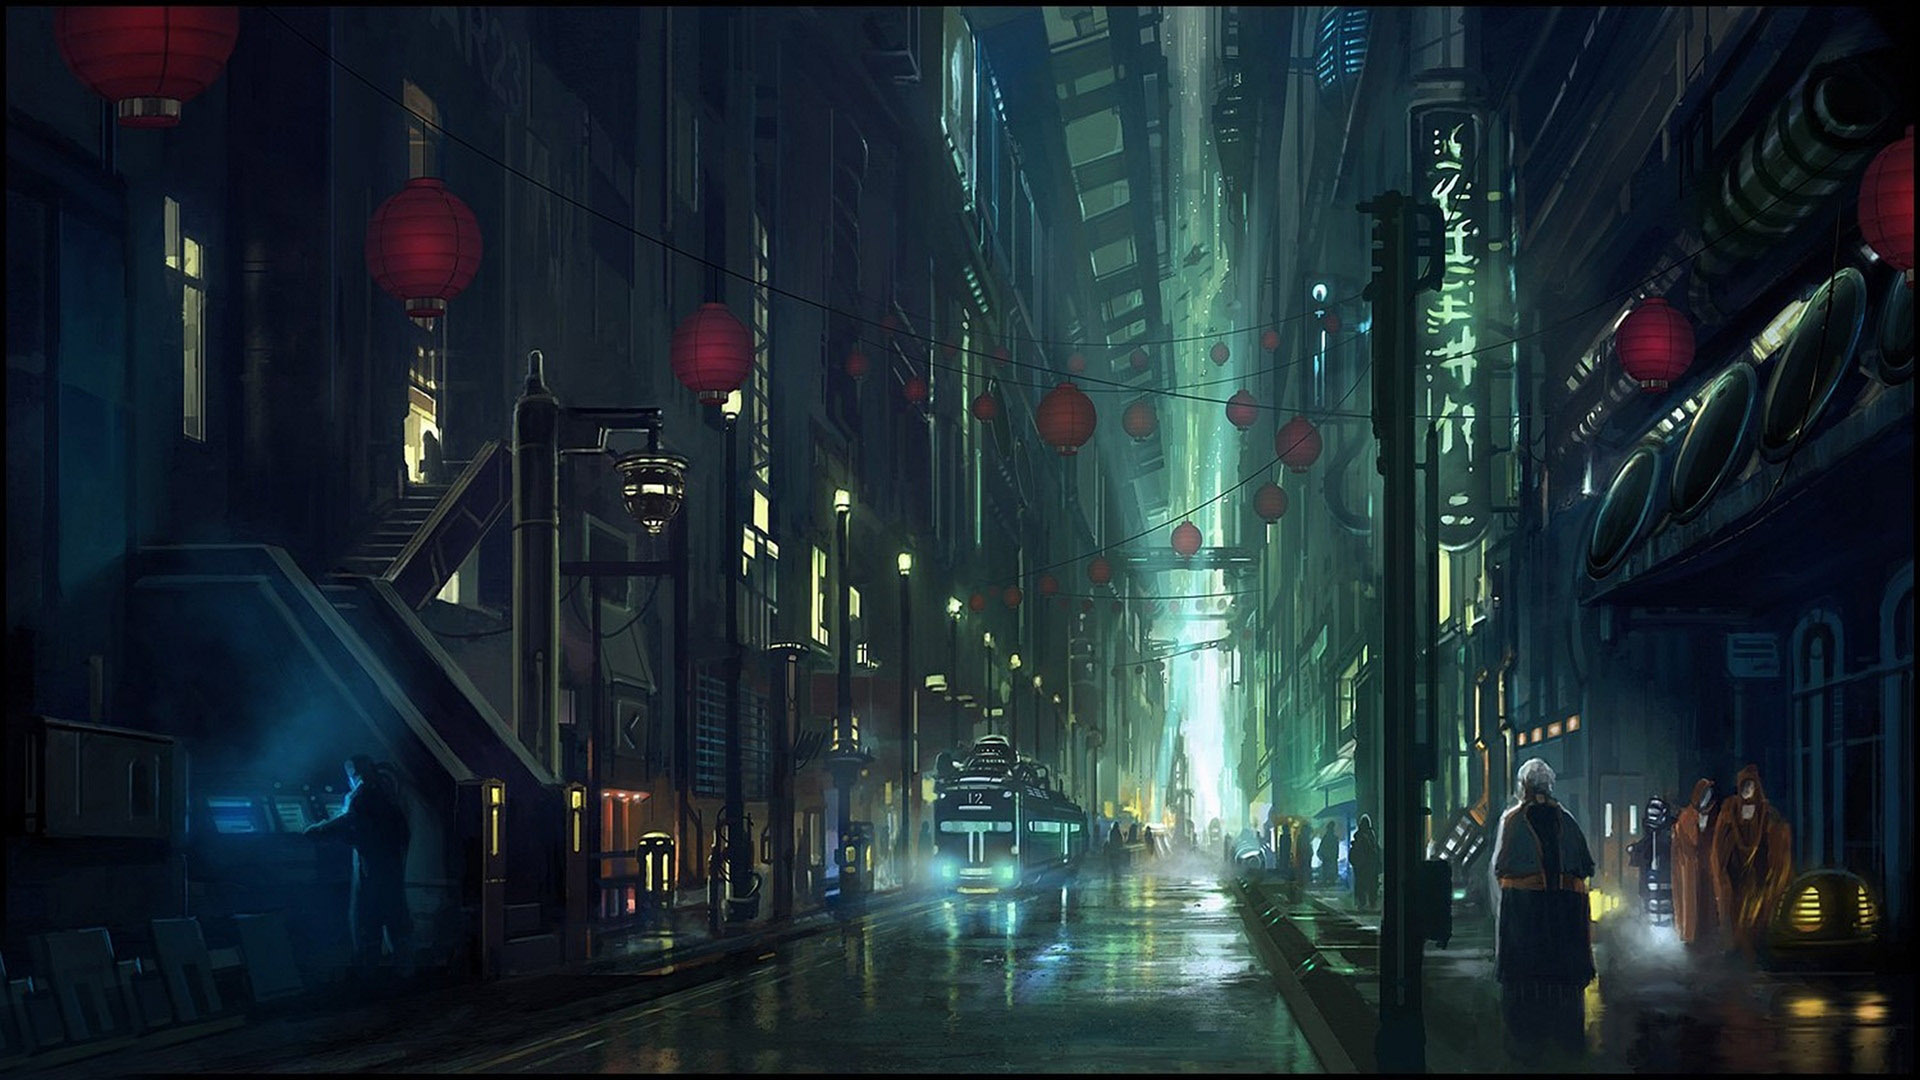 Great Wallpaper Night City Street - cyberpunk-city-street-wallpaper-PIC-MCH055835  Best Photo Reference.jpg